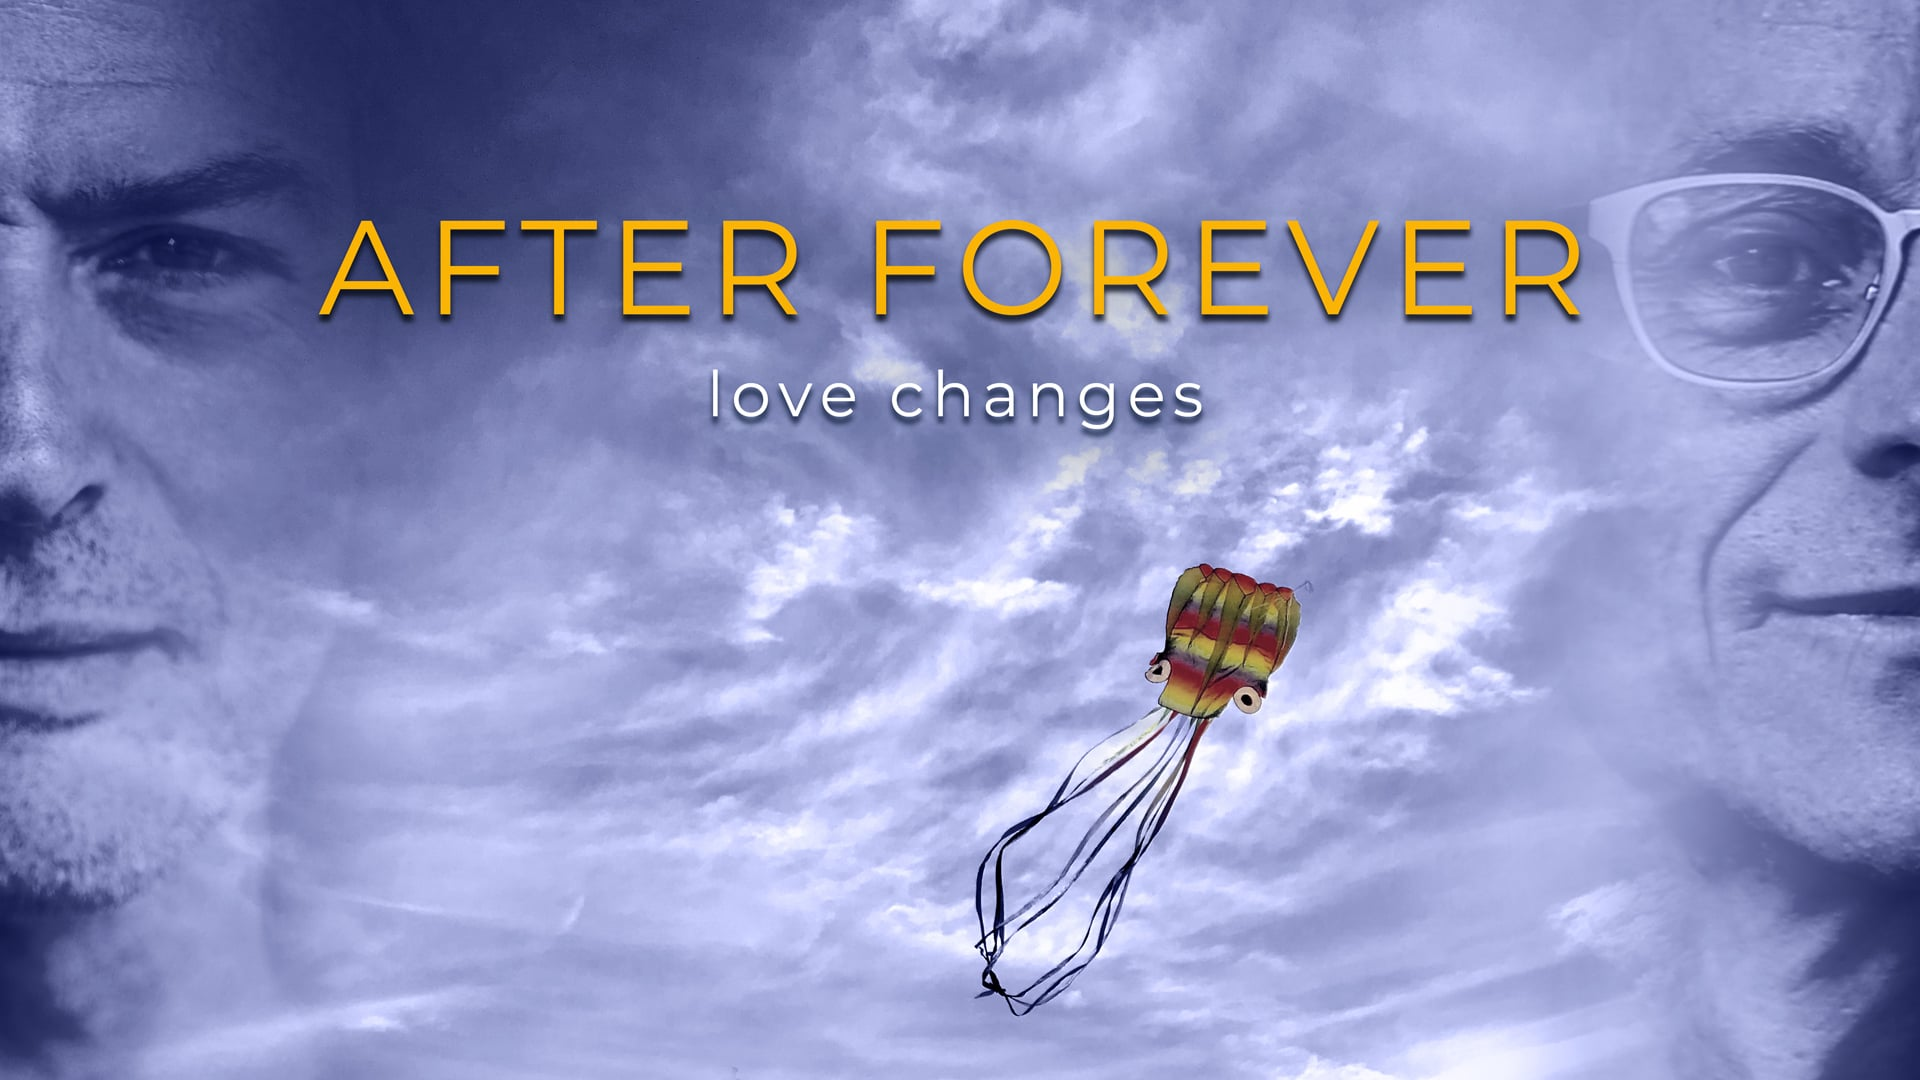 After Forever Season 2 - Official Trailer